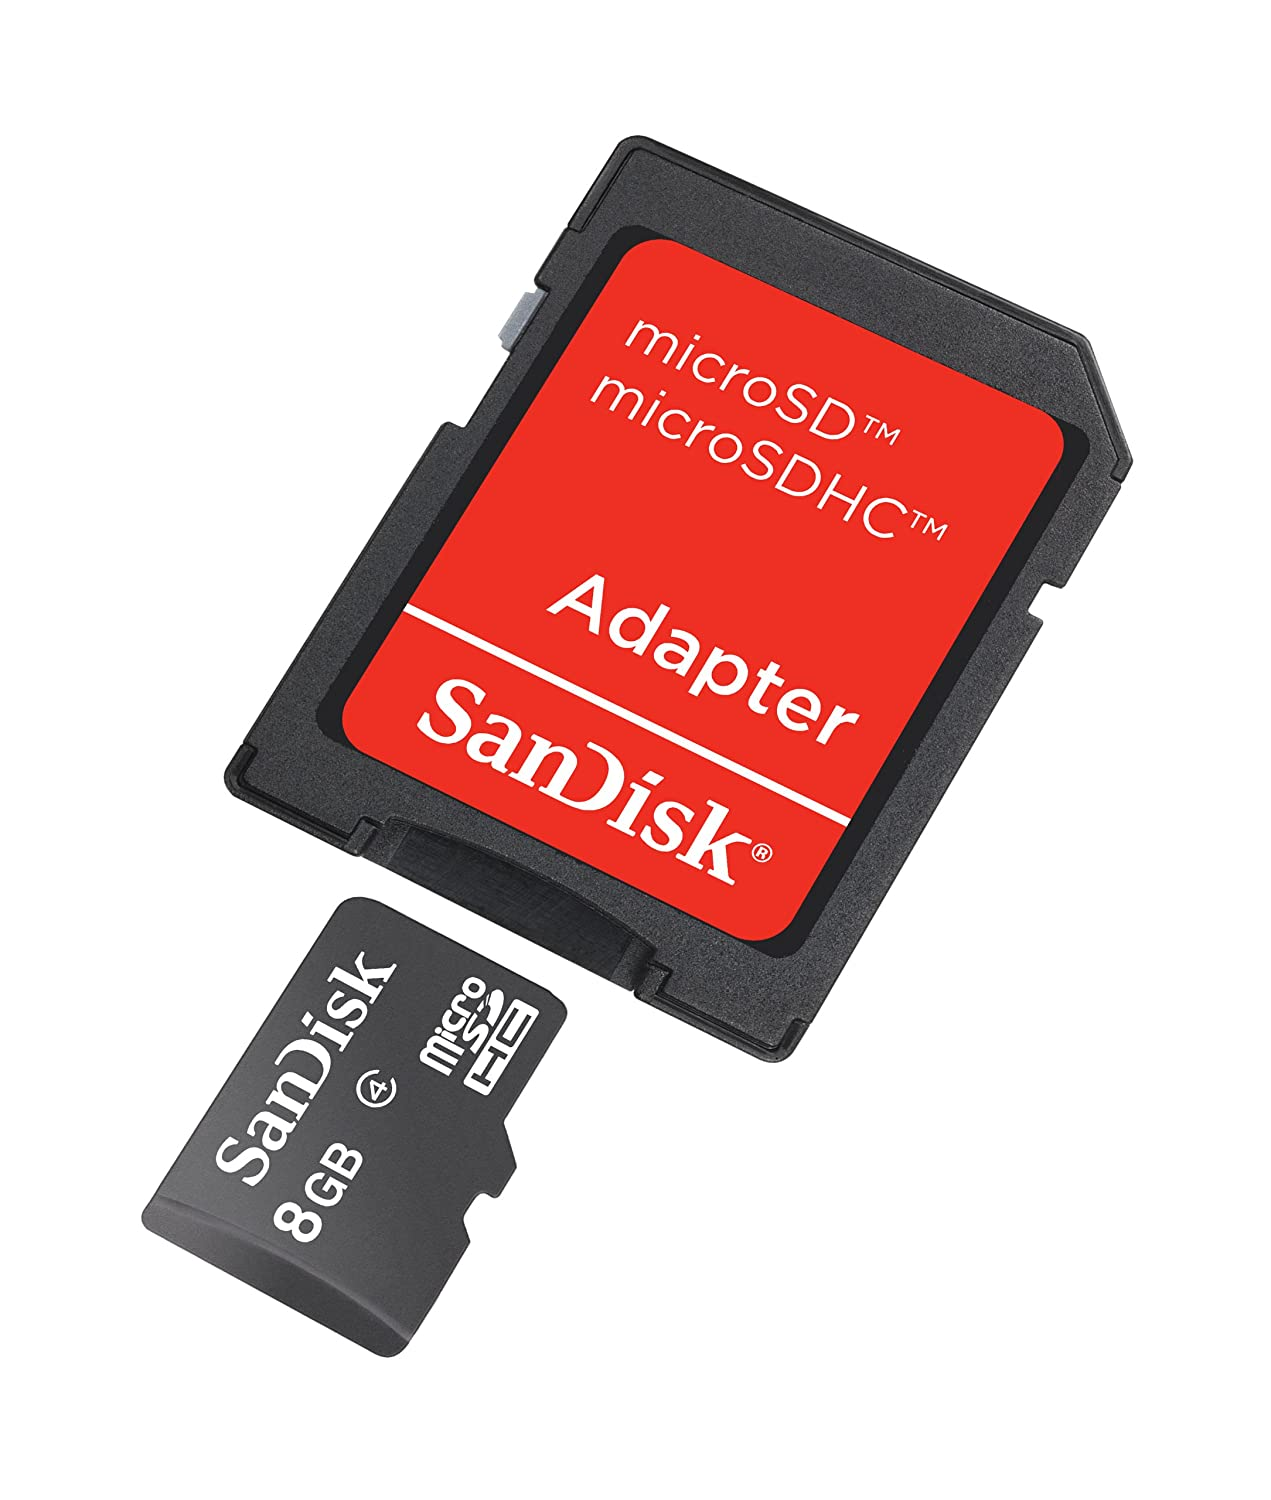 8GB Sandisk MicroSDHC Memory Card with SD Adapter